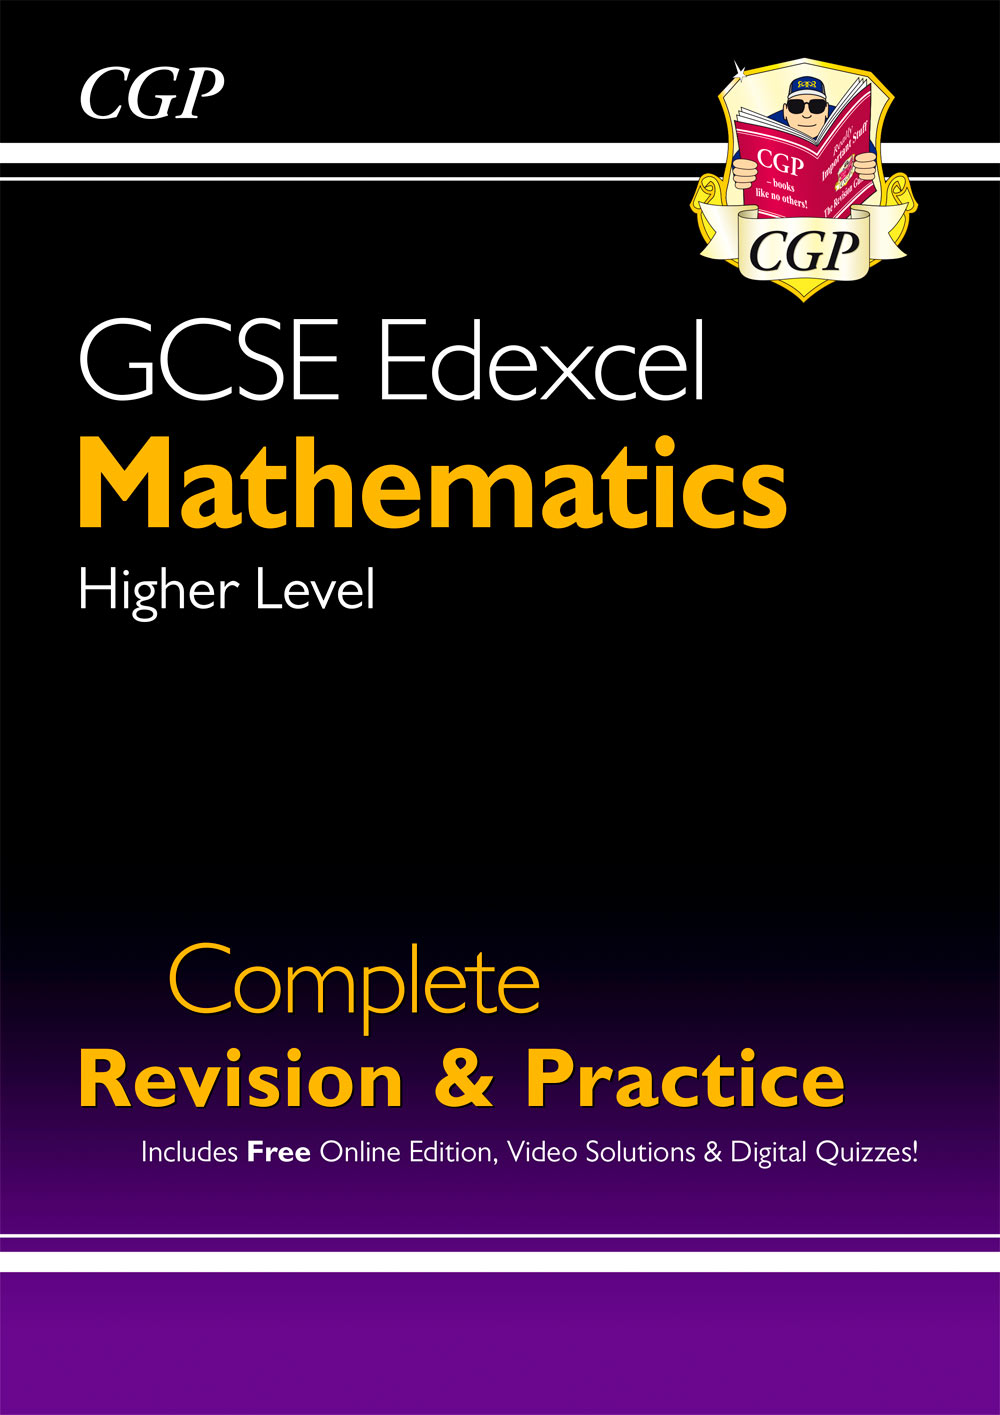 MXHS44 - New 2021 GCSE Maths Edexcel Complete Revision & Practice: Higher inc Online Ed, Videos & Qu